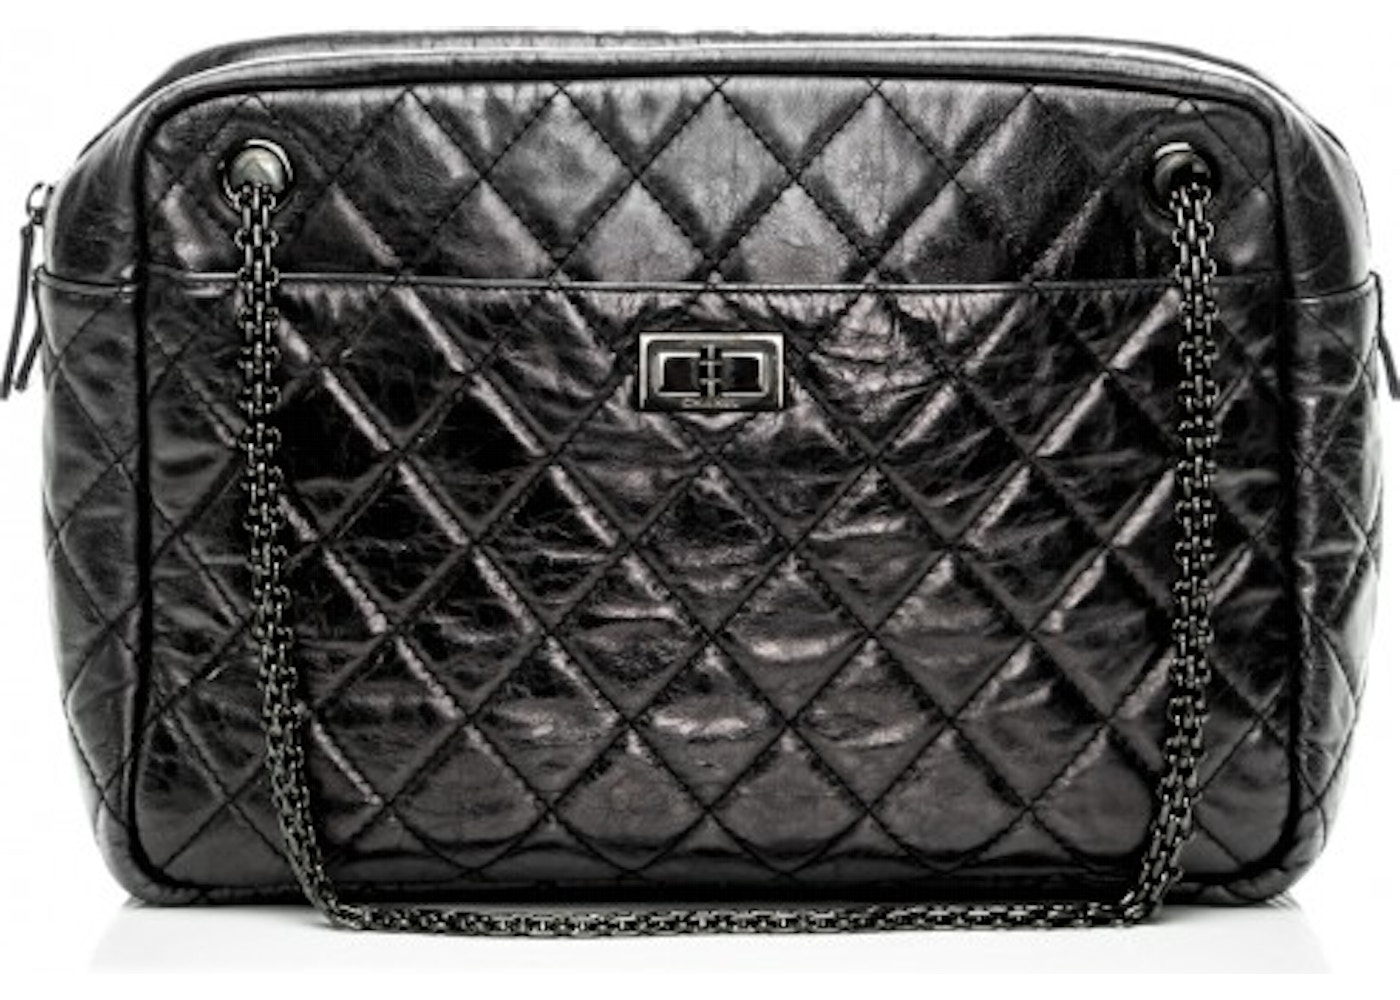 d29583316a461a Chanel Reissue Camera Case Quilted Aged Large Metallic Black. Quilted Aged  Large Metallic Black